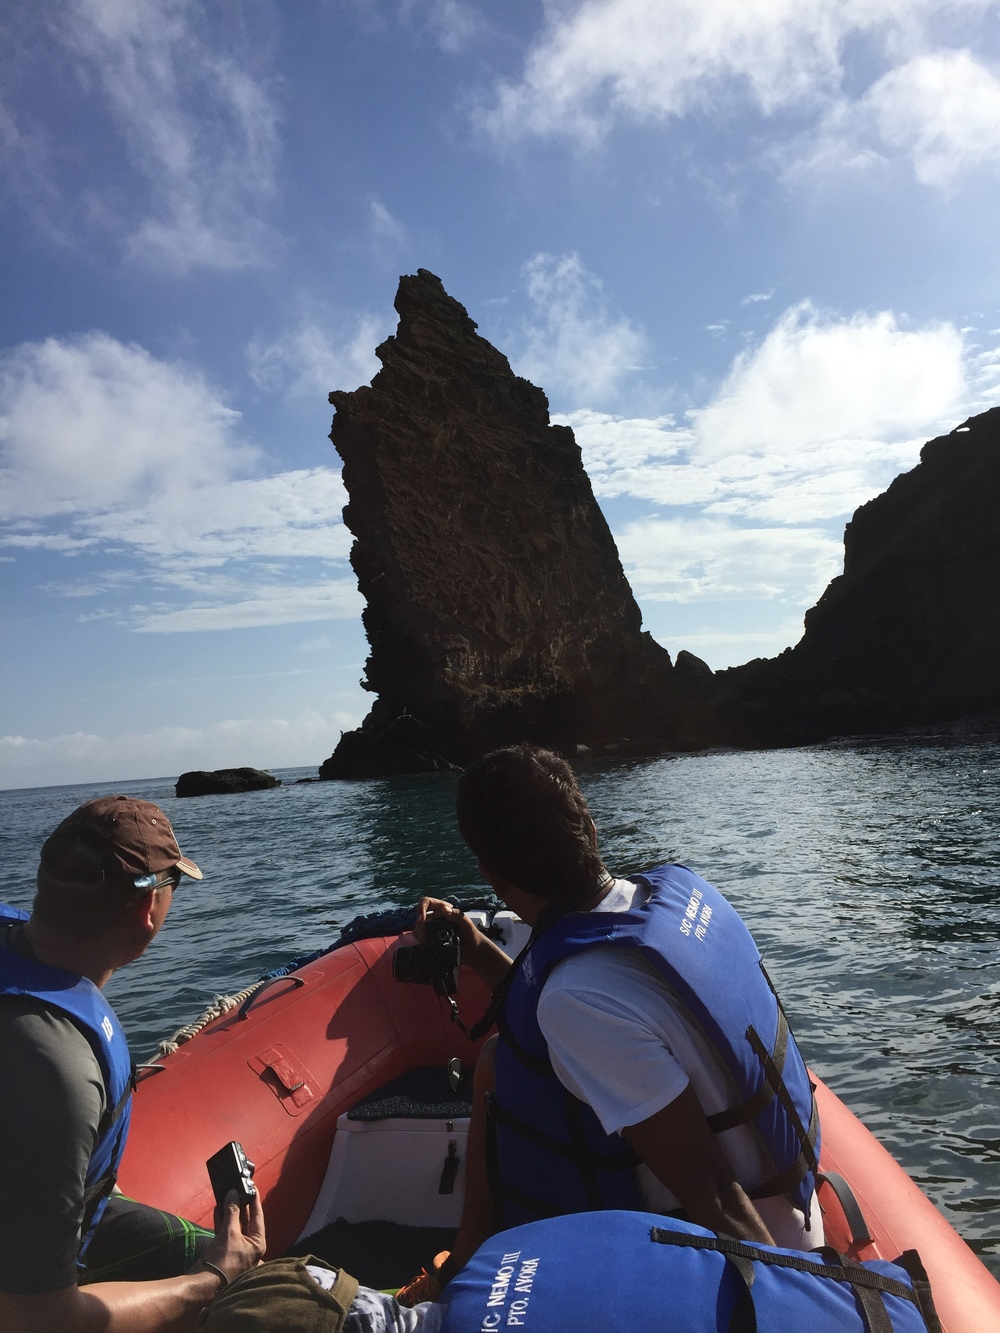 On the Zodiac, we get closer to the rock formation.